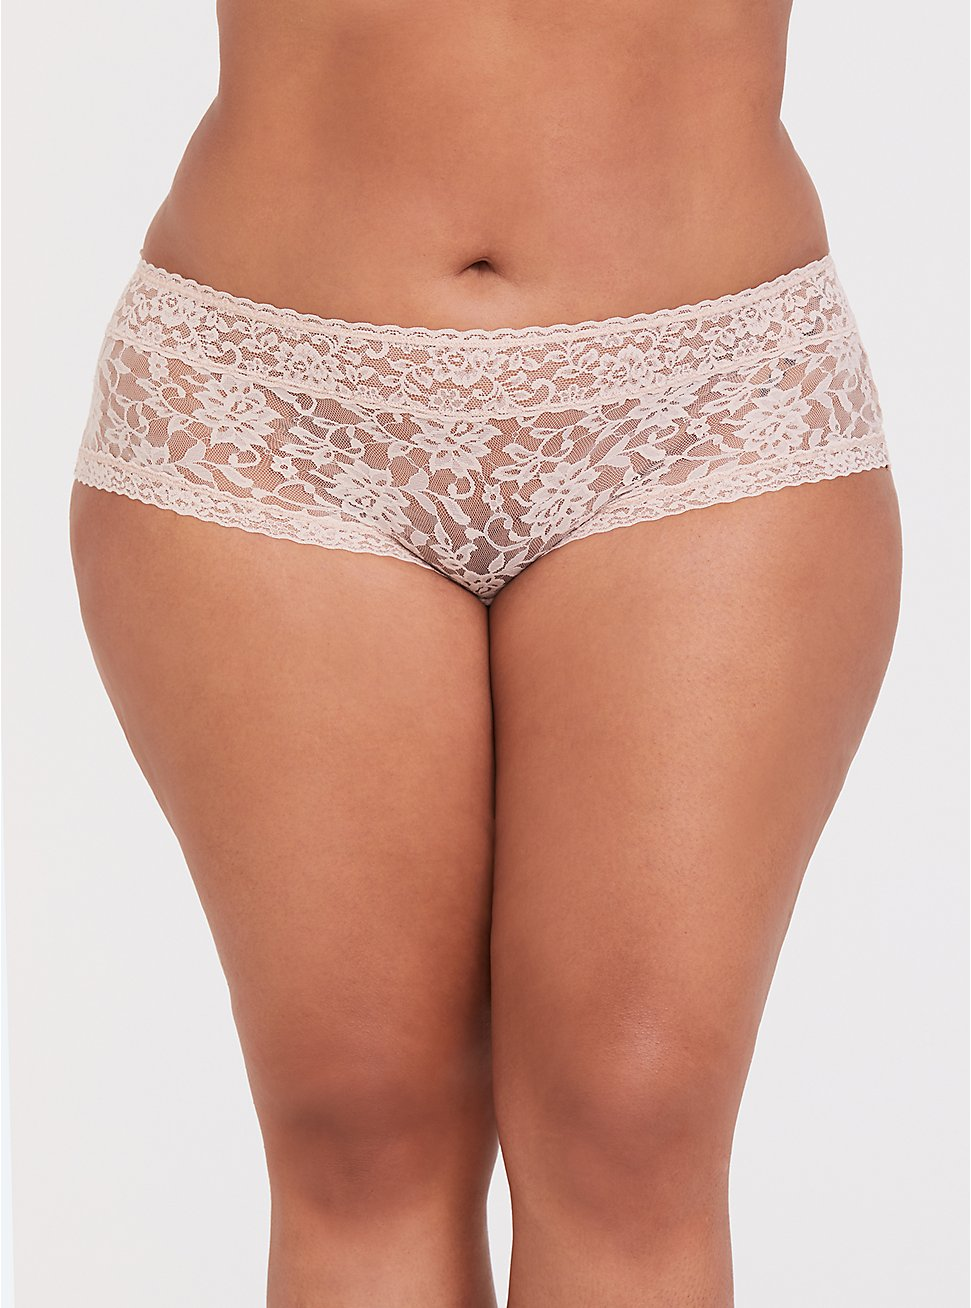 Plus Size Beige Lacey Cheeky Panty, ROSE DUST, hi-res